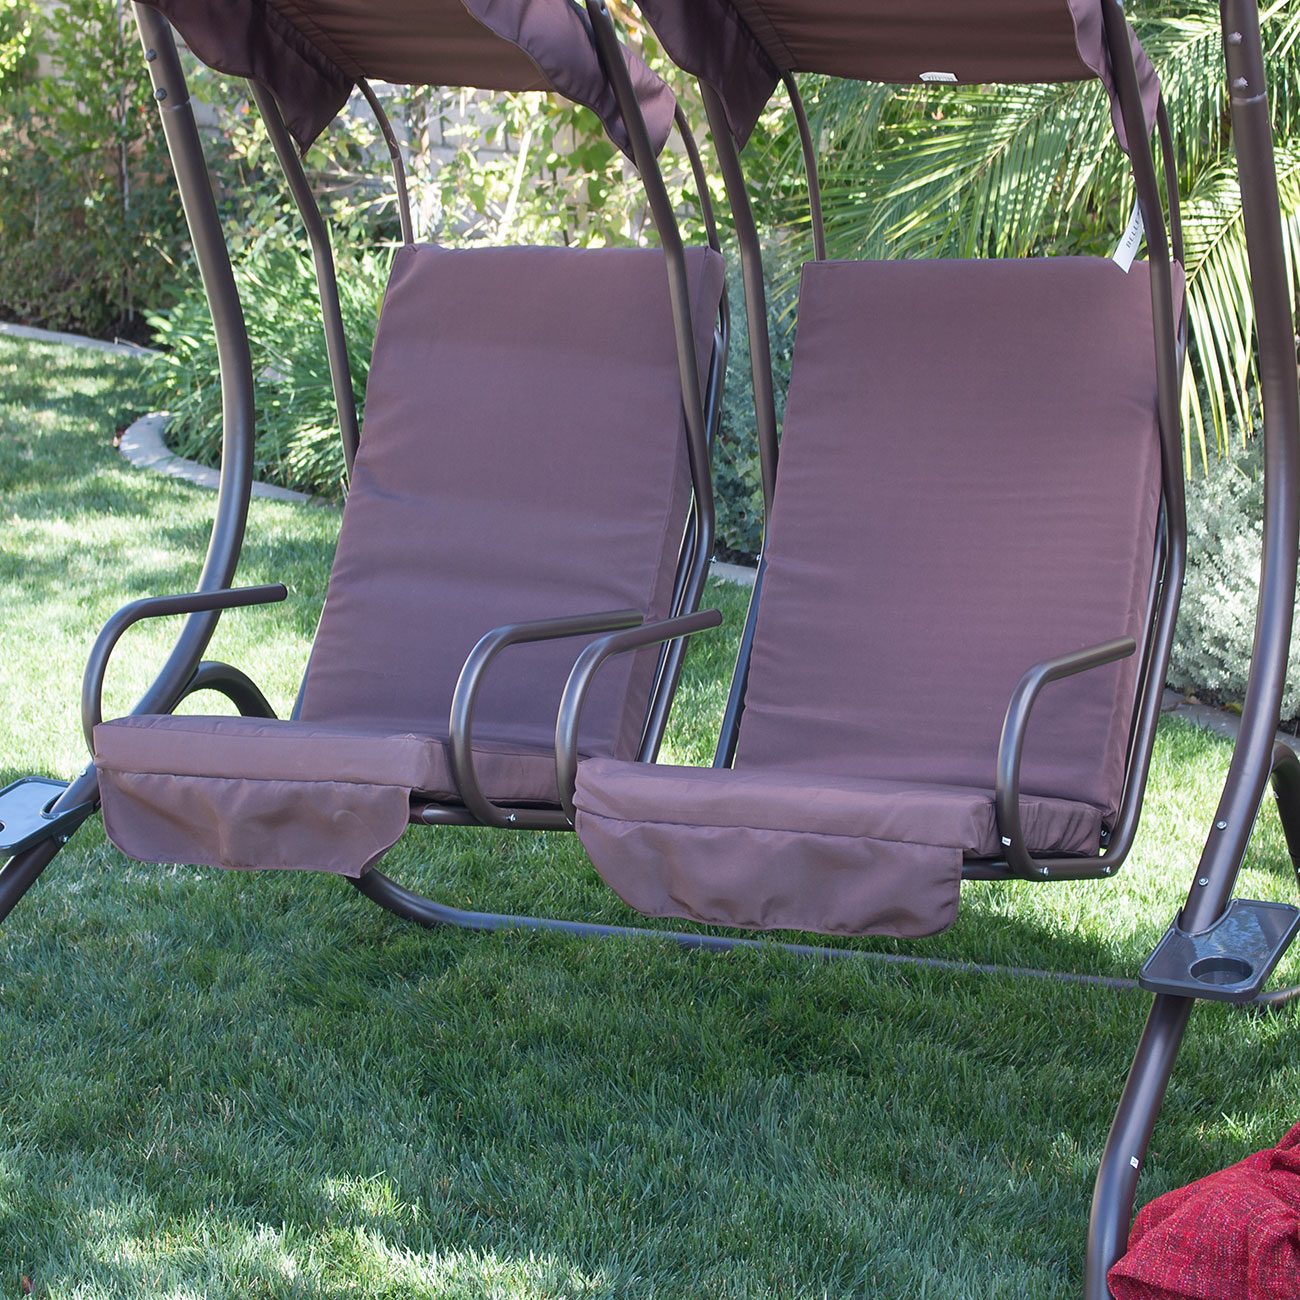 New Outdoor Swing Set 2 Person Patio Frame Padded Seat